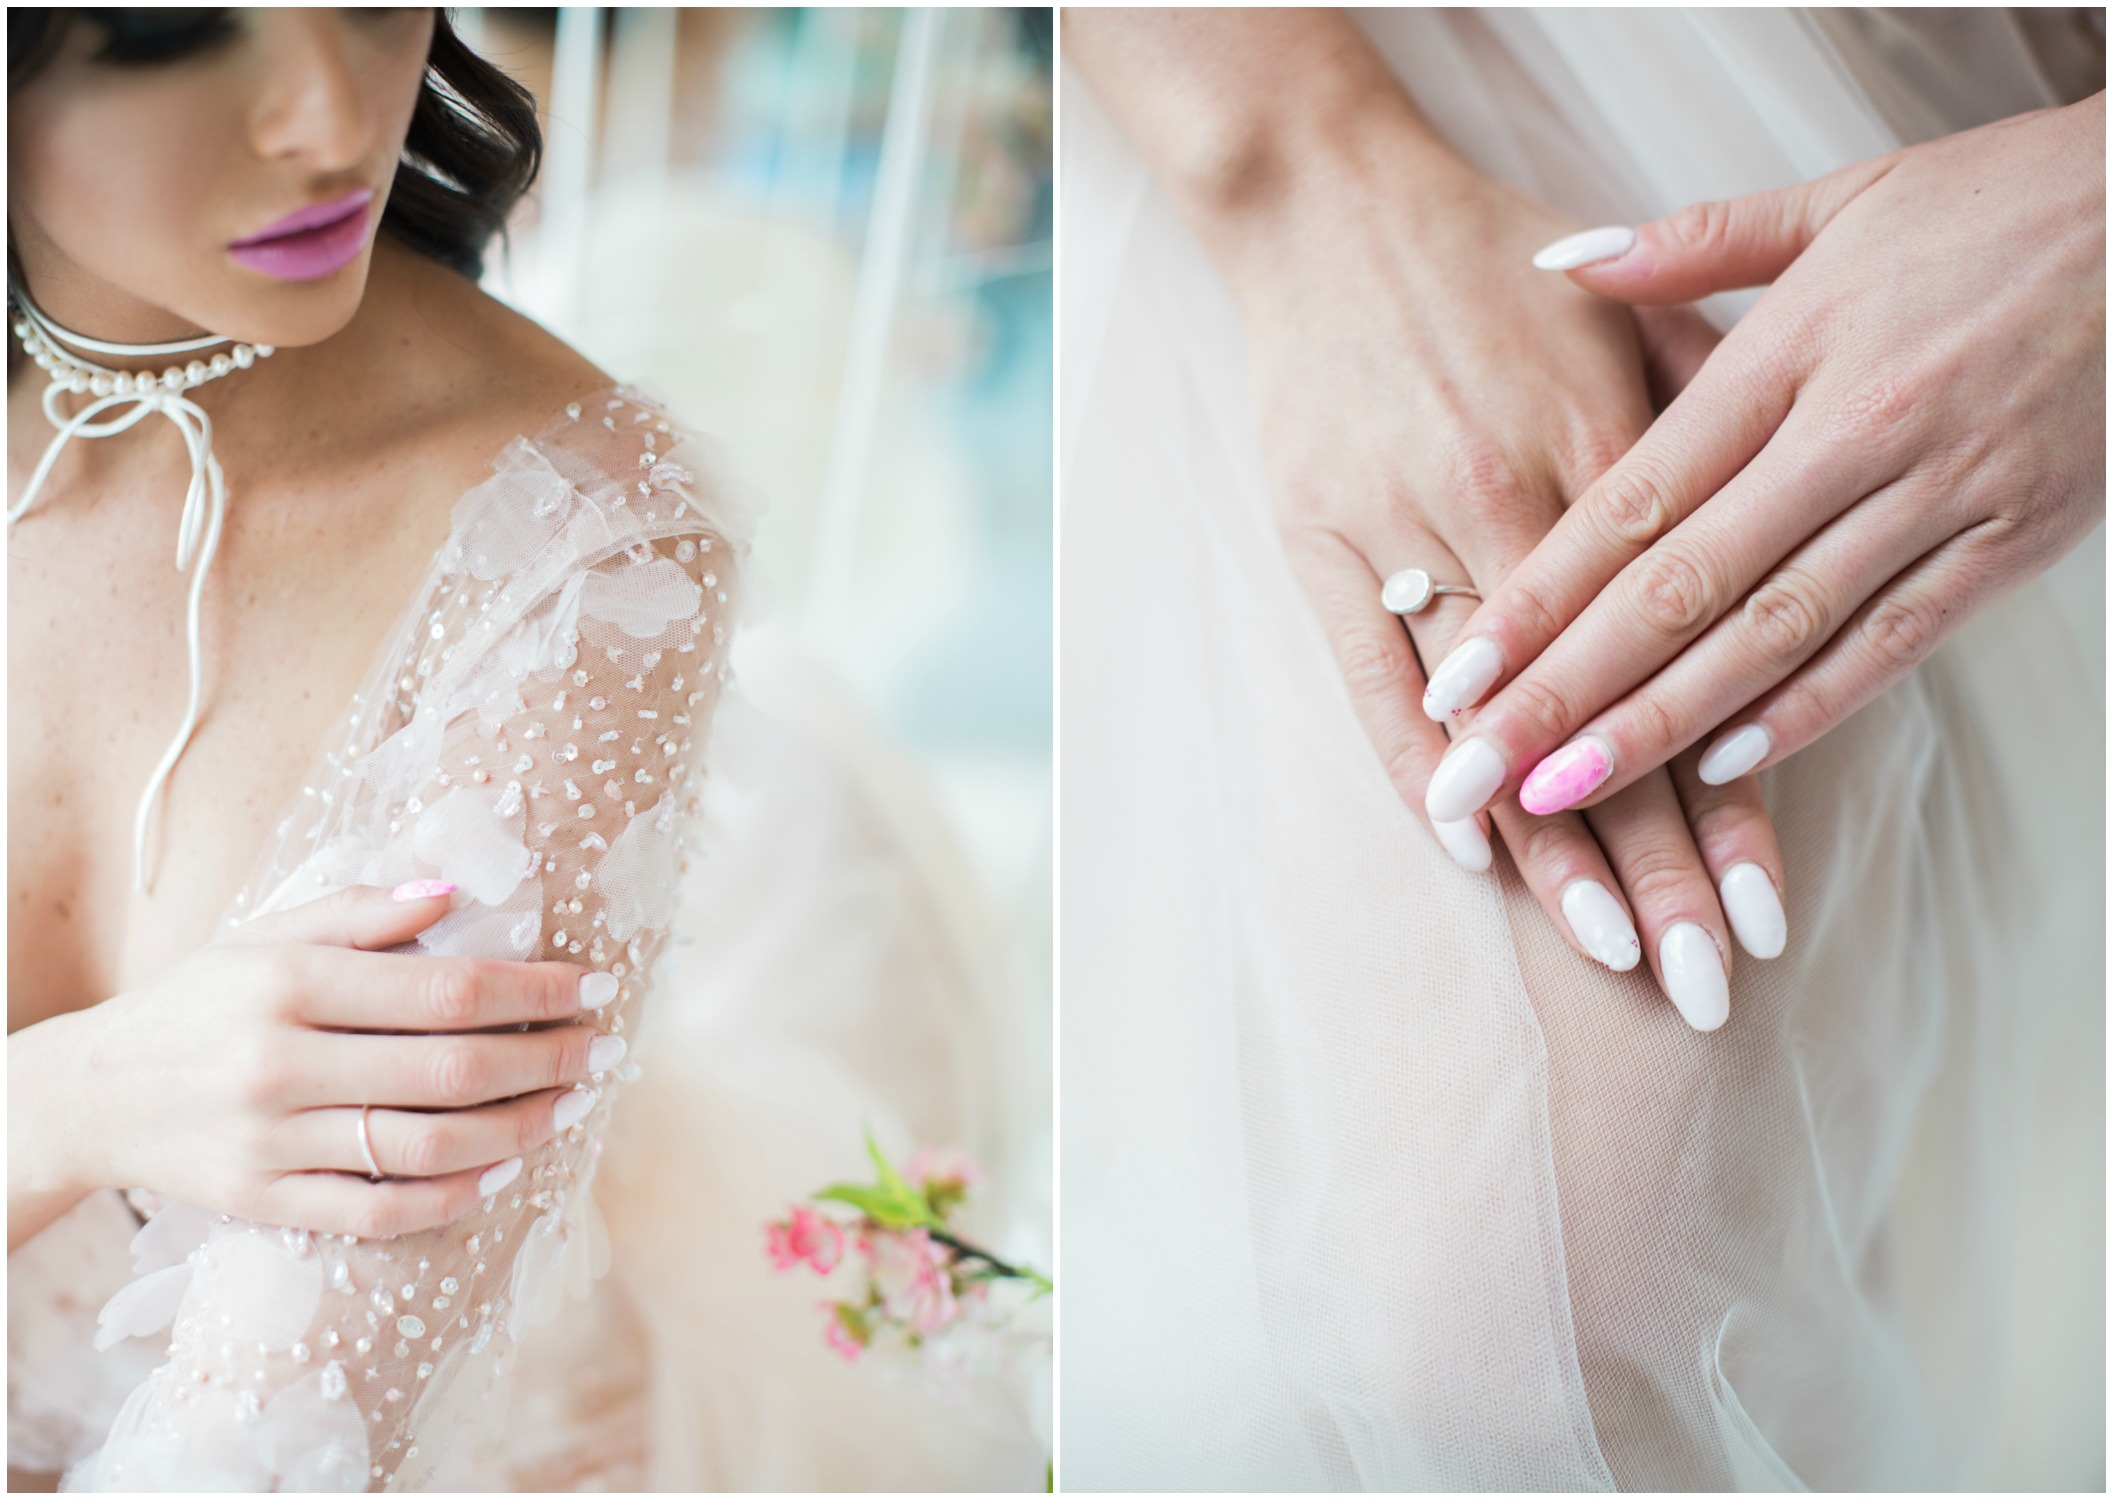 Cherry Blossom Inspired Nails Vancouver, Prep Beauty. Denise Lin, Elsa Corsi